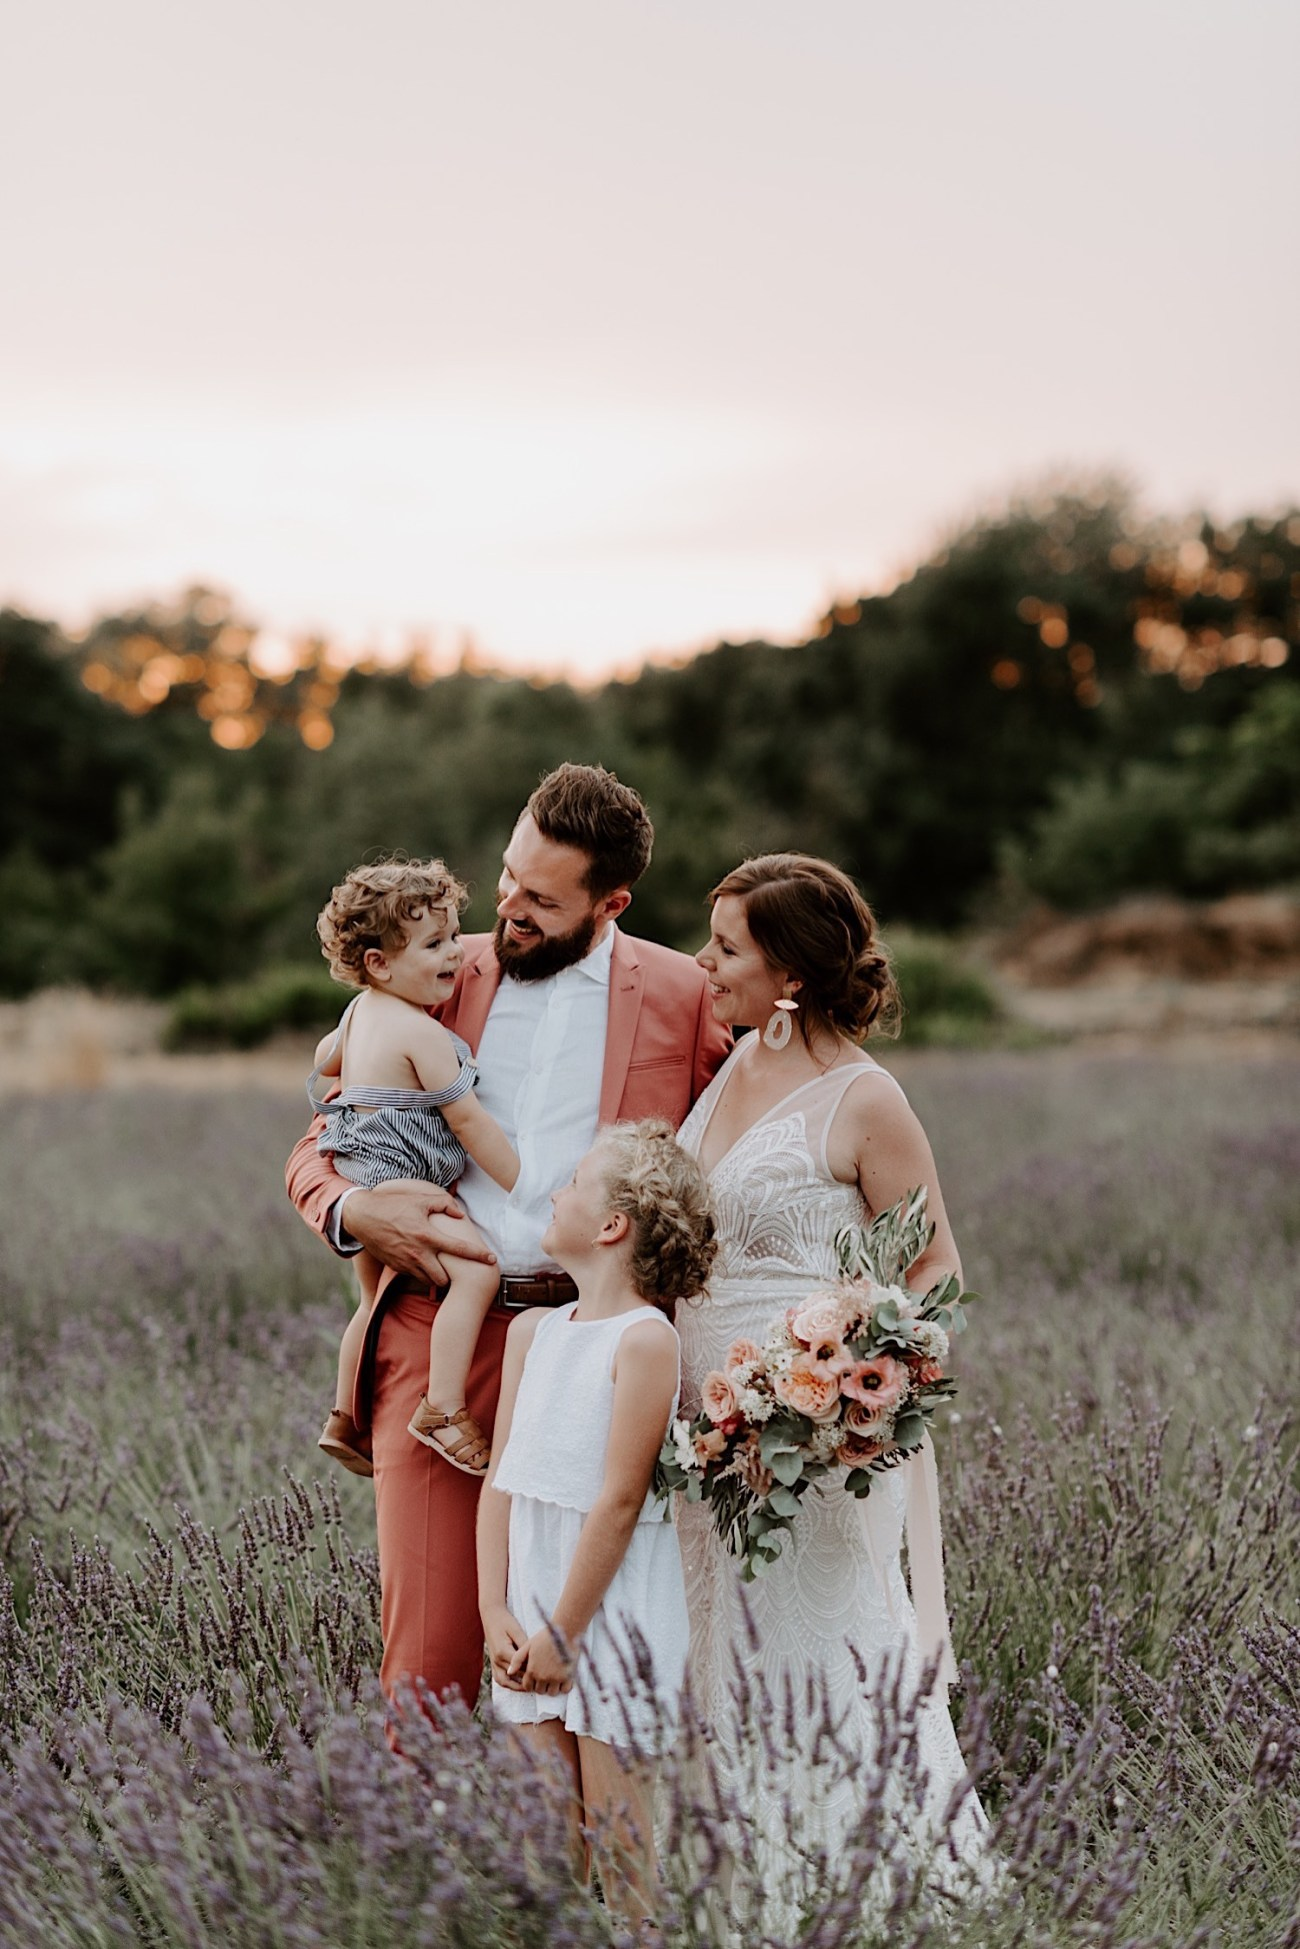 Terre Ugo Un Marriage En Provence Lavender Field Wedding French Wedding Provence Wedding Destination Wedding France Photographe De Marriage Provence France Anais Possamai Photography 33